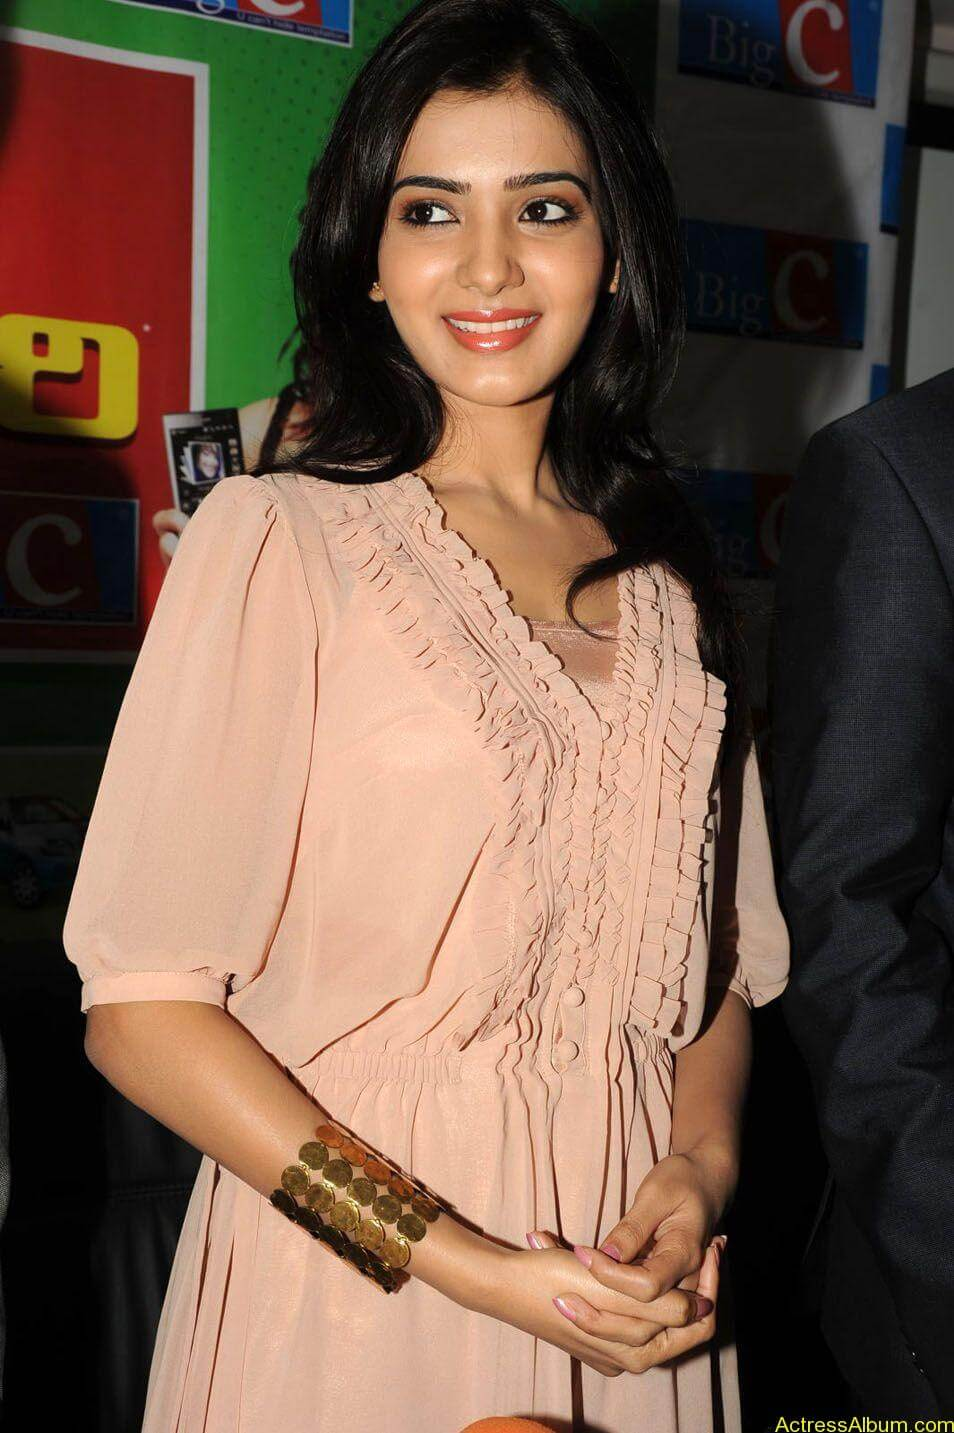 Samantha stills at big c rojuko laksha contest (3)